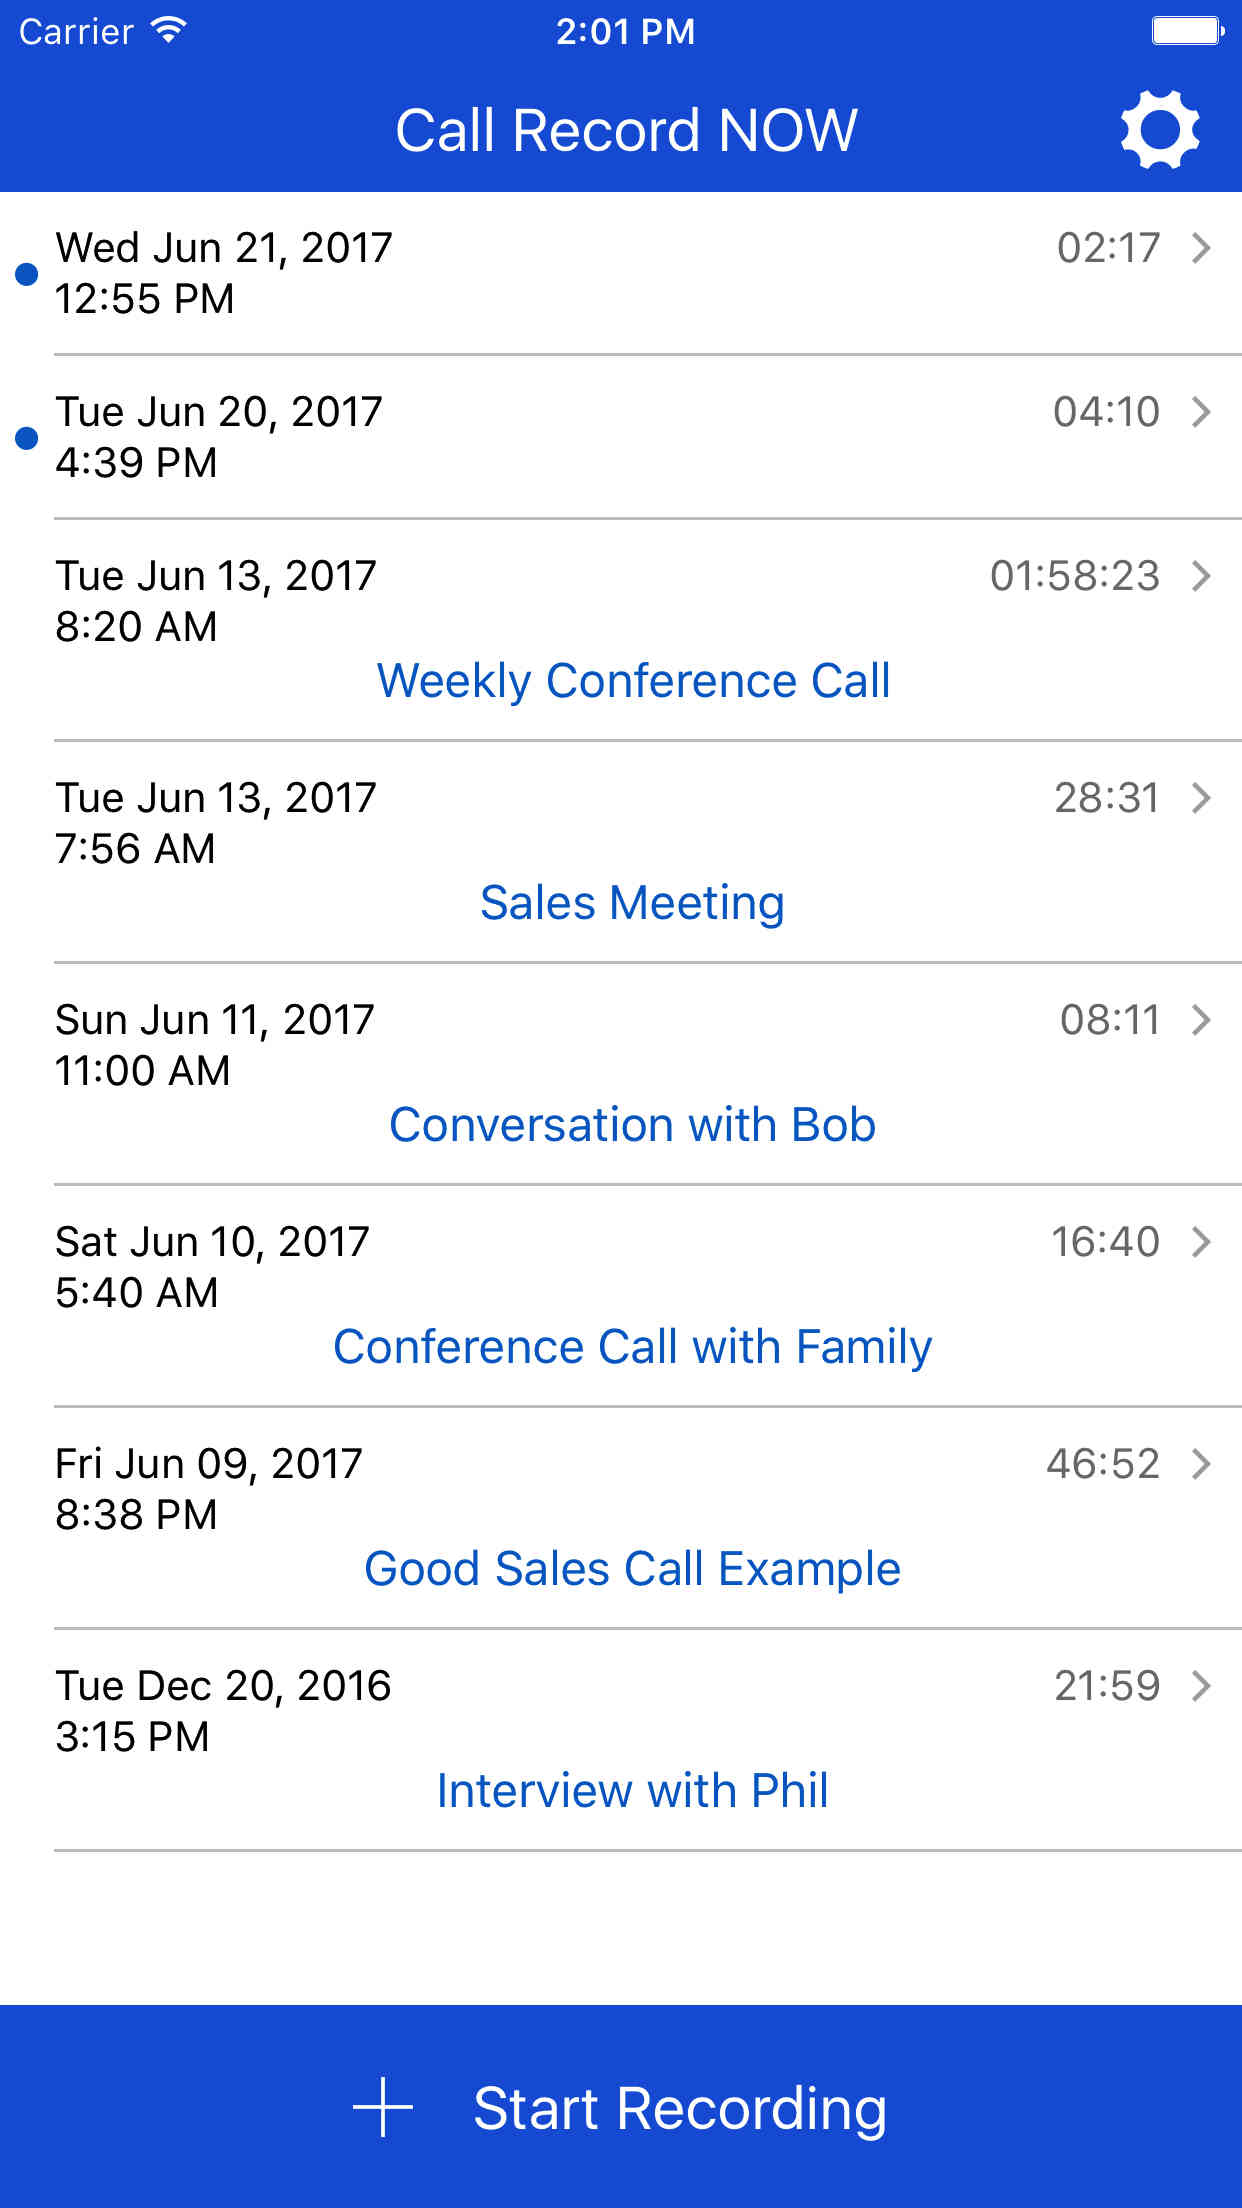 Call Record NOW: Call Recorder App for iPhone  Record any